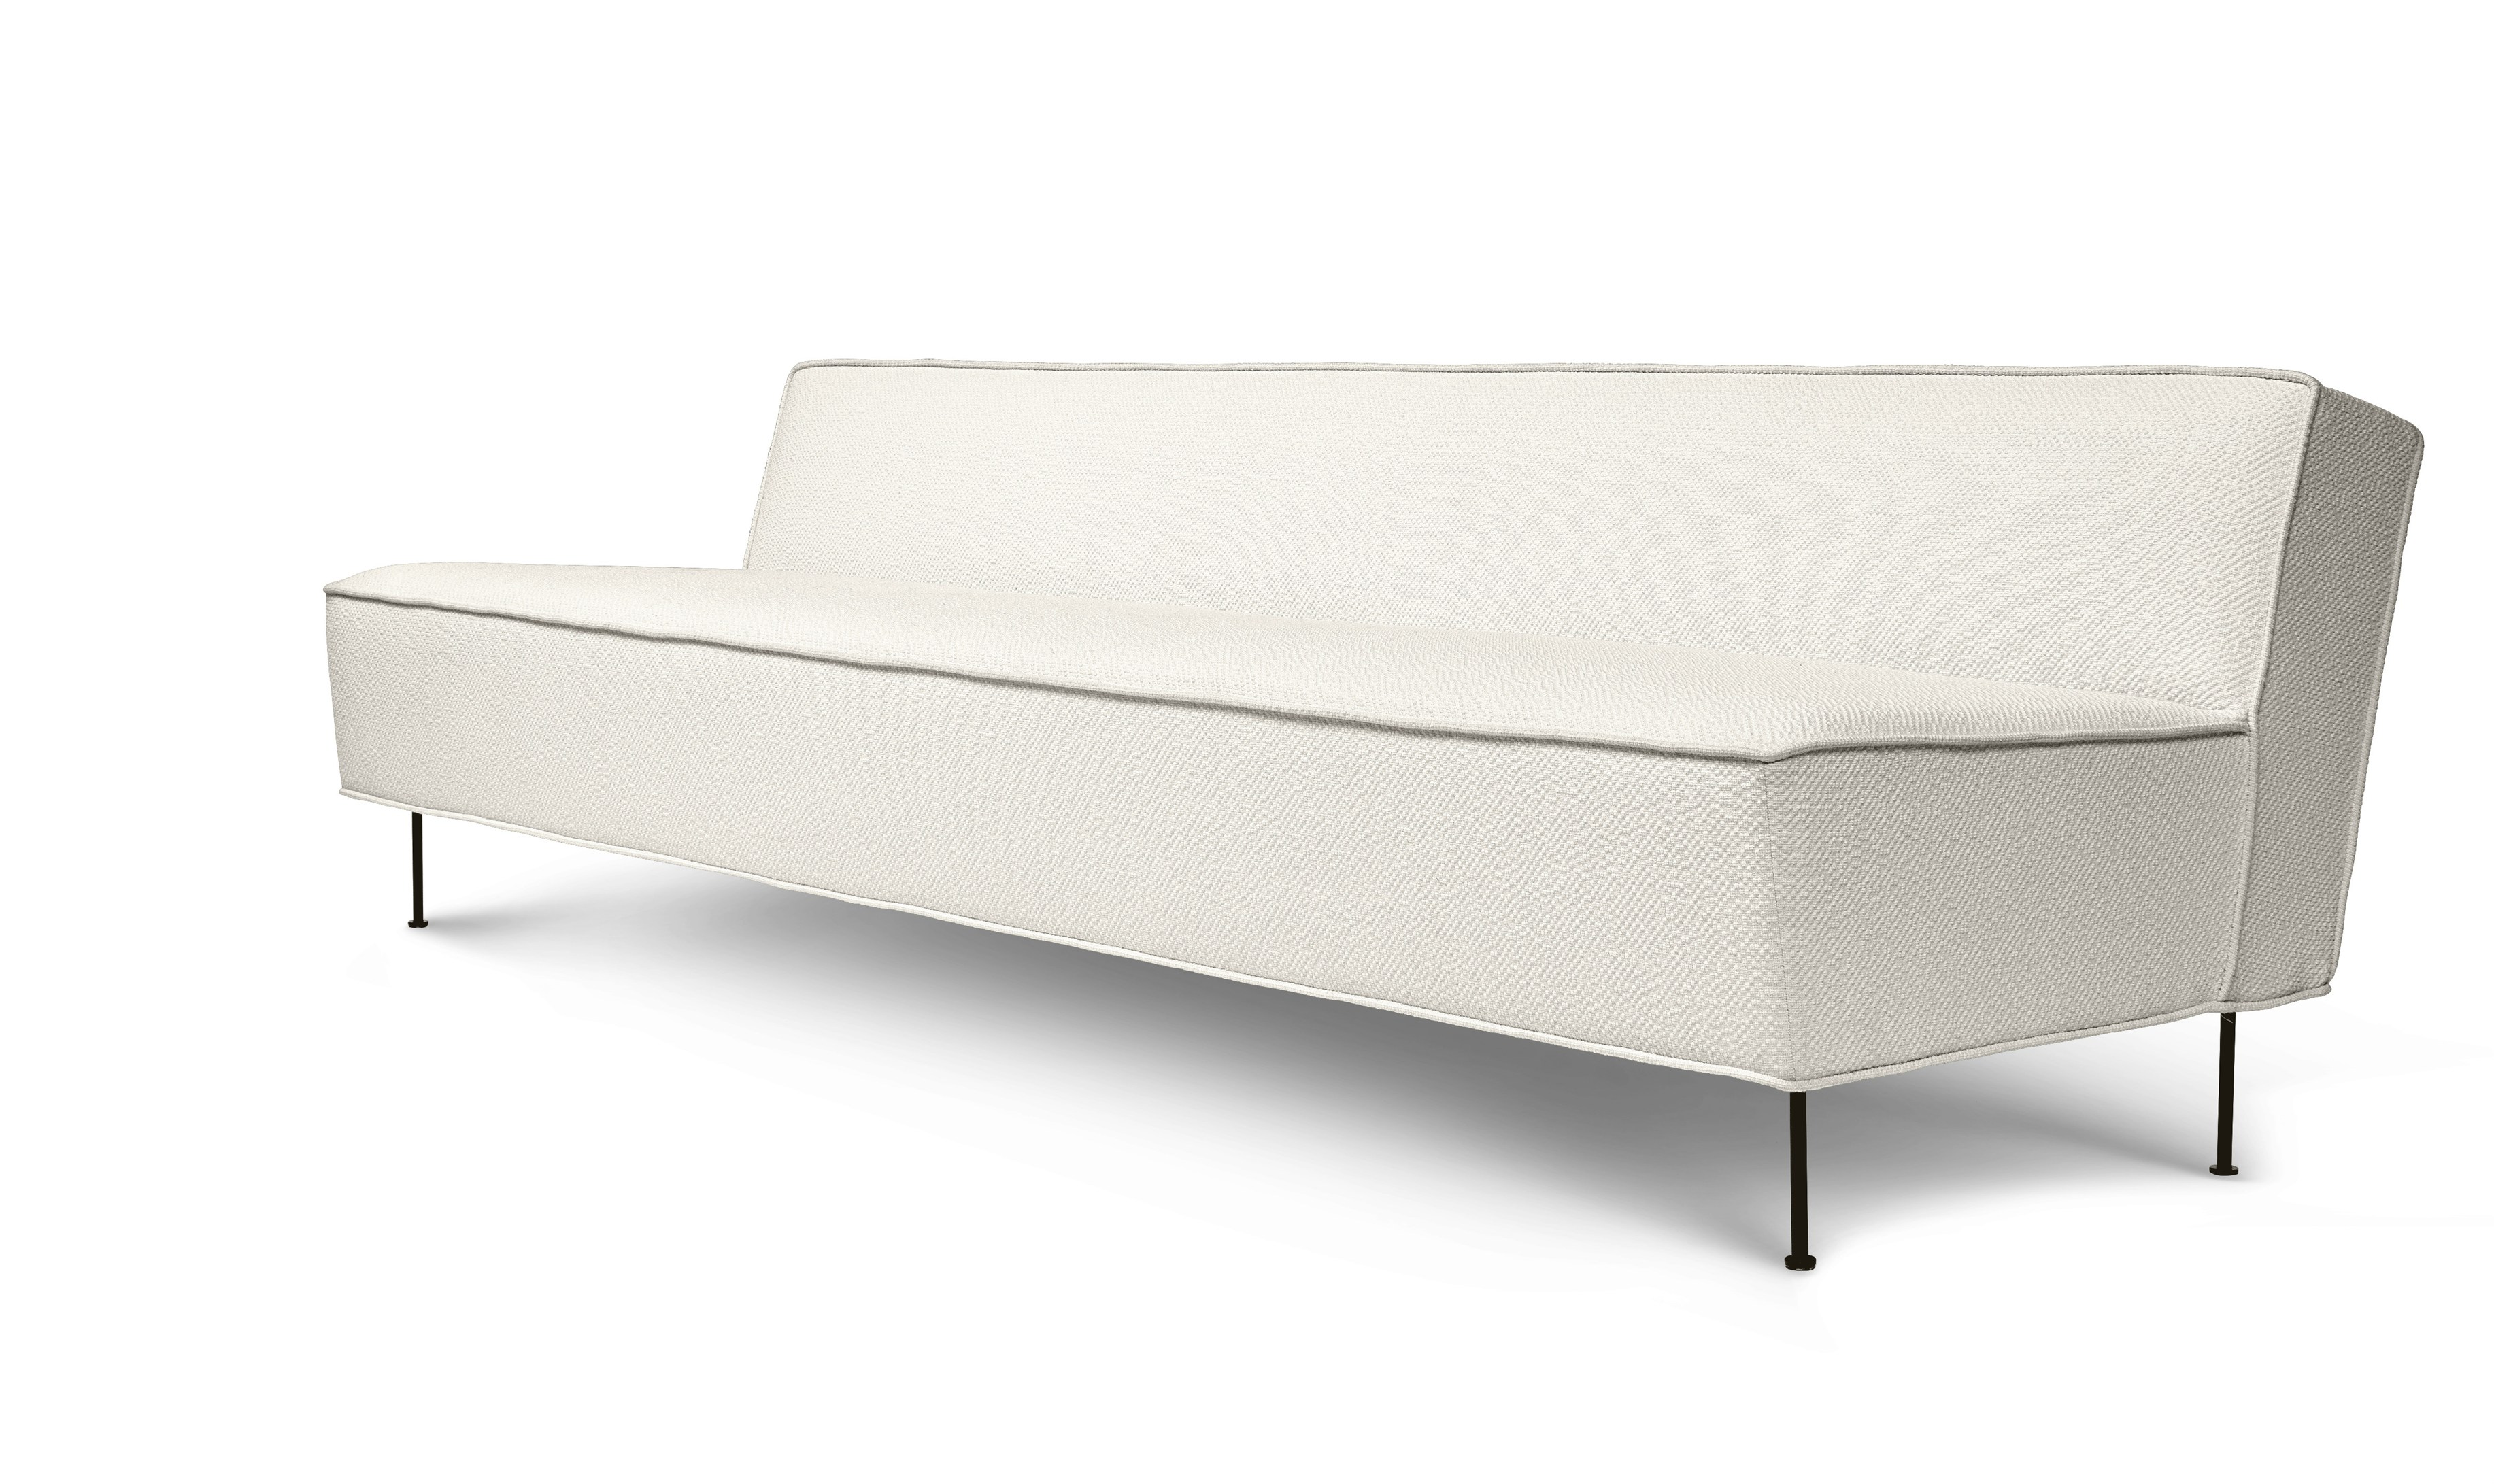 Modern Line Furniture Of Timeless Design Modern Line Sofa By Greta Magnusson